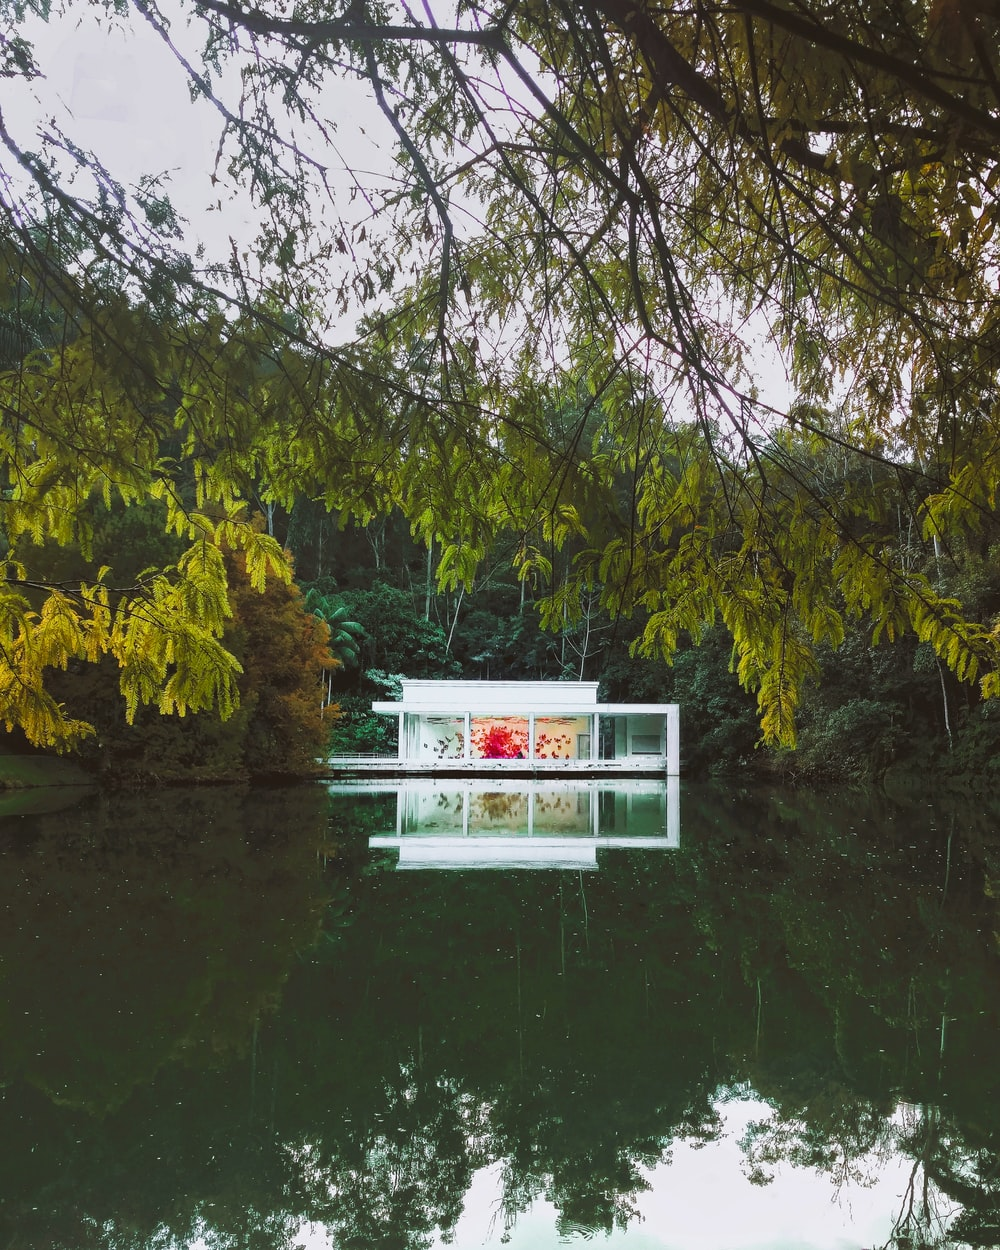 white and red wooden house near green trees and river during daytime